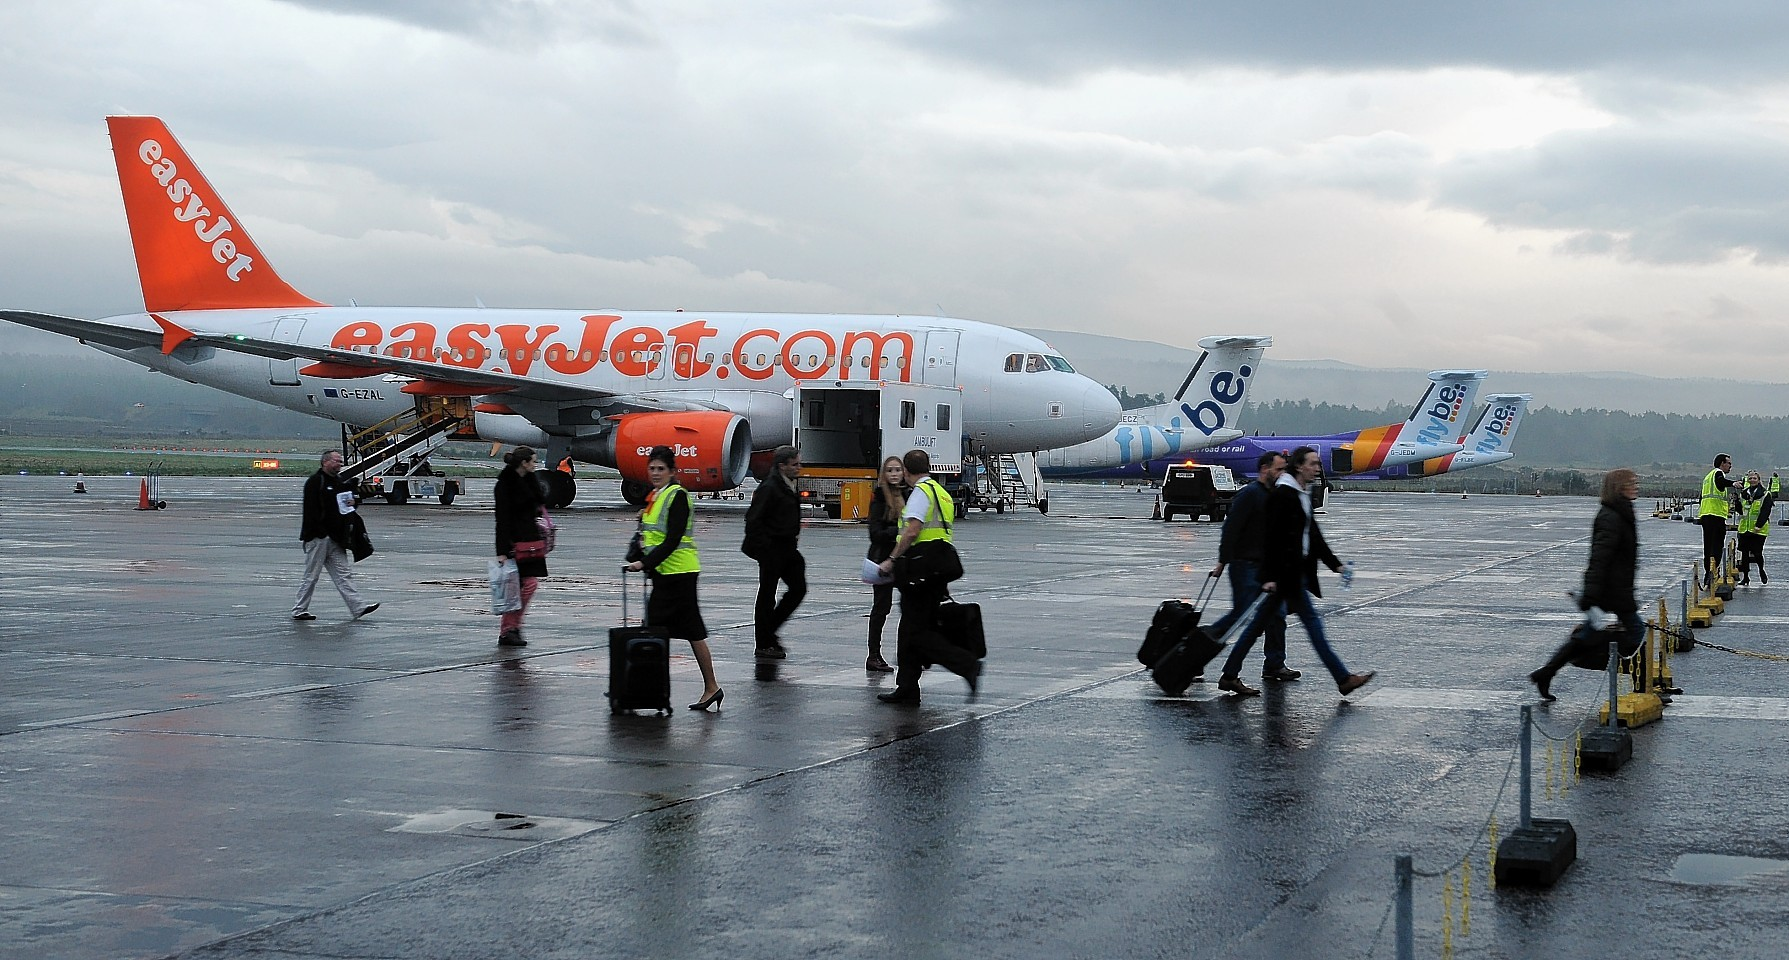 Easyjet has announced its UK flight schedule will resume on June 15.